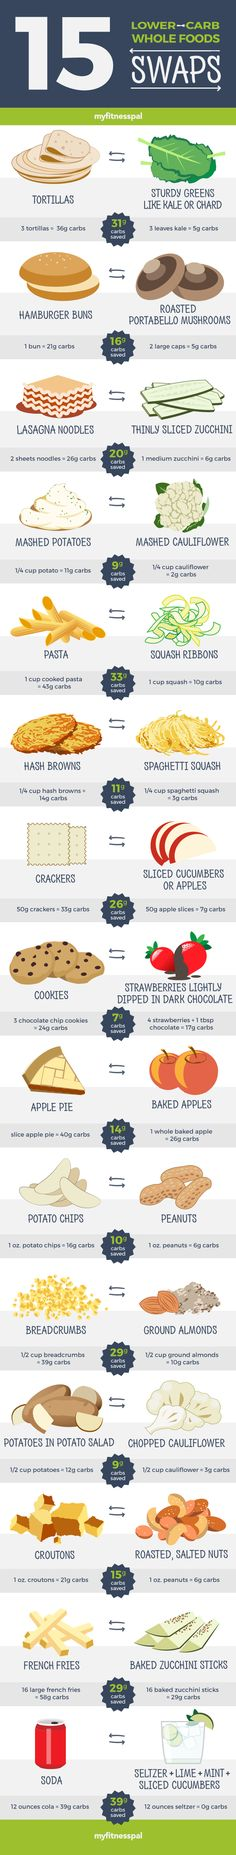 lower carb swaps